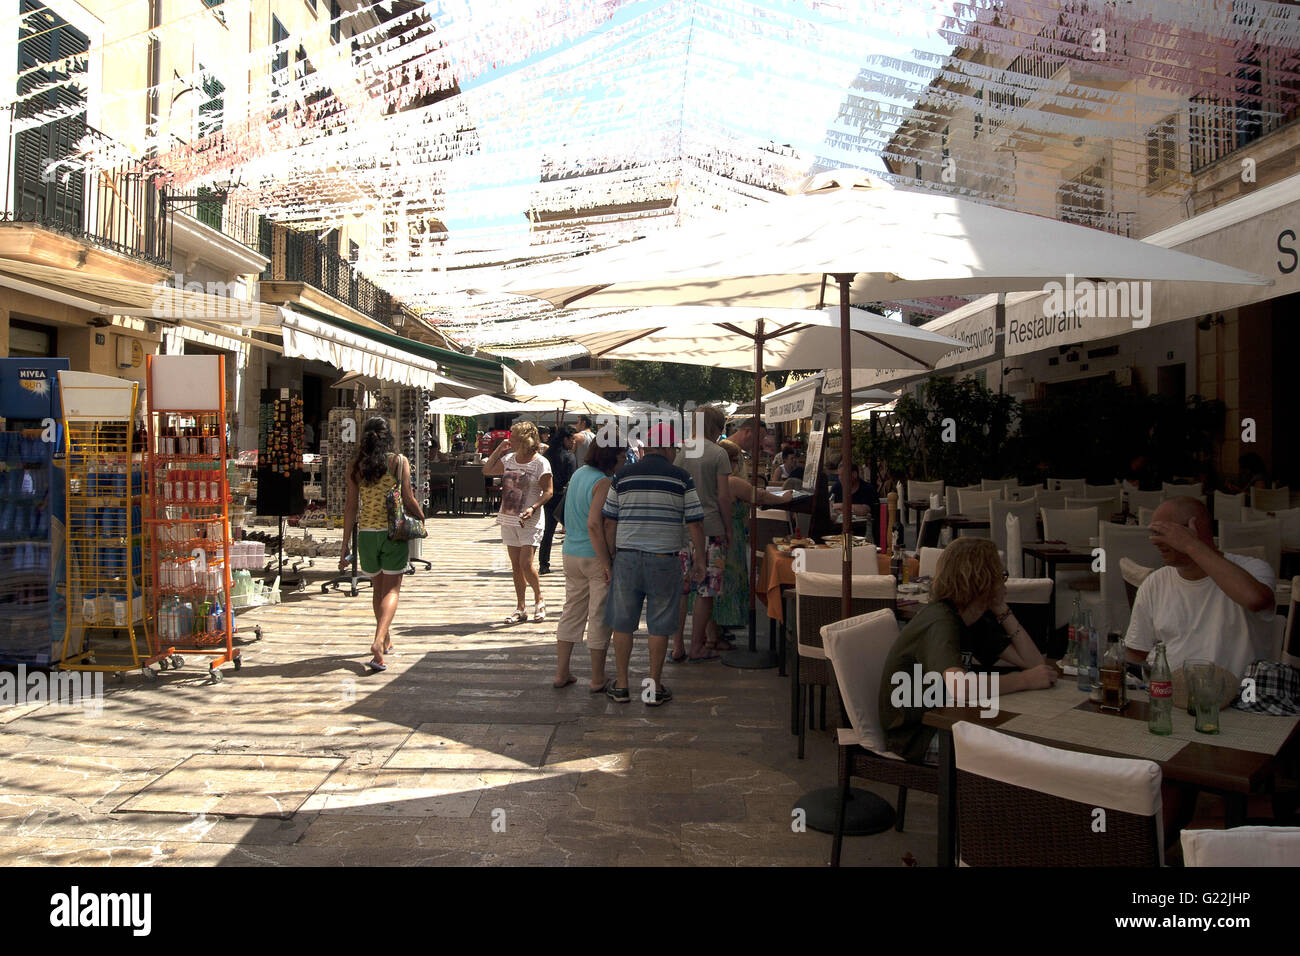 a beautiful photo of a busy touristy street with cafés and souvenir shops in Palma de Mallorca, Spain, seaside, - Stock Image